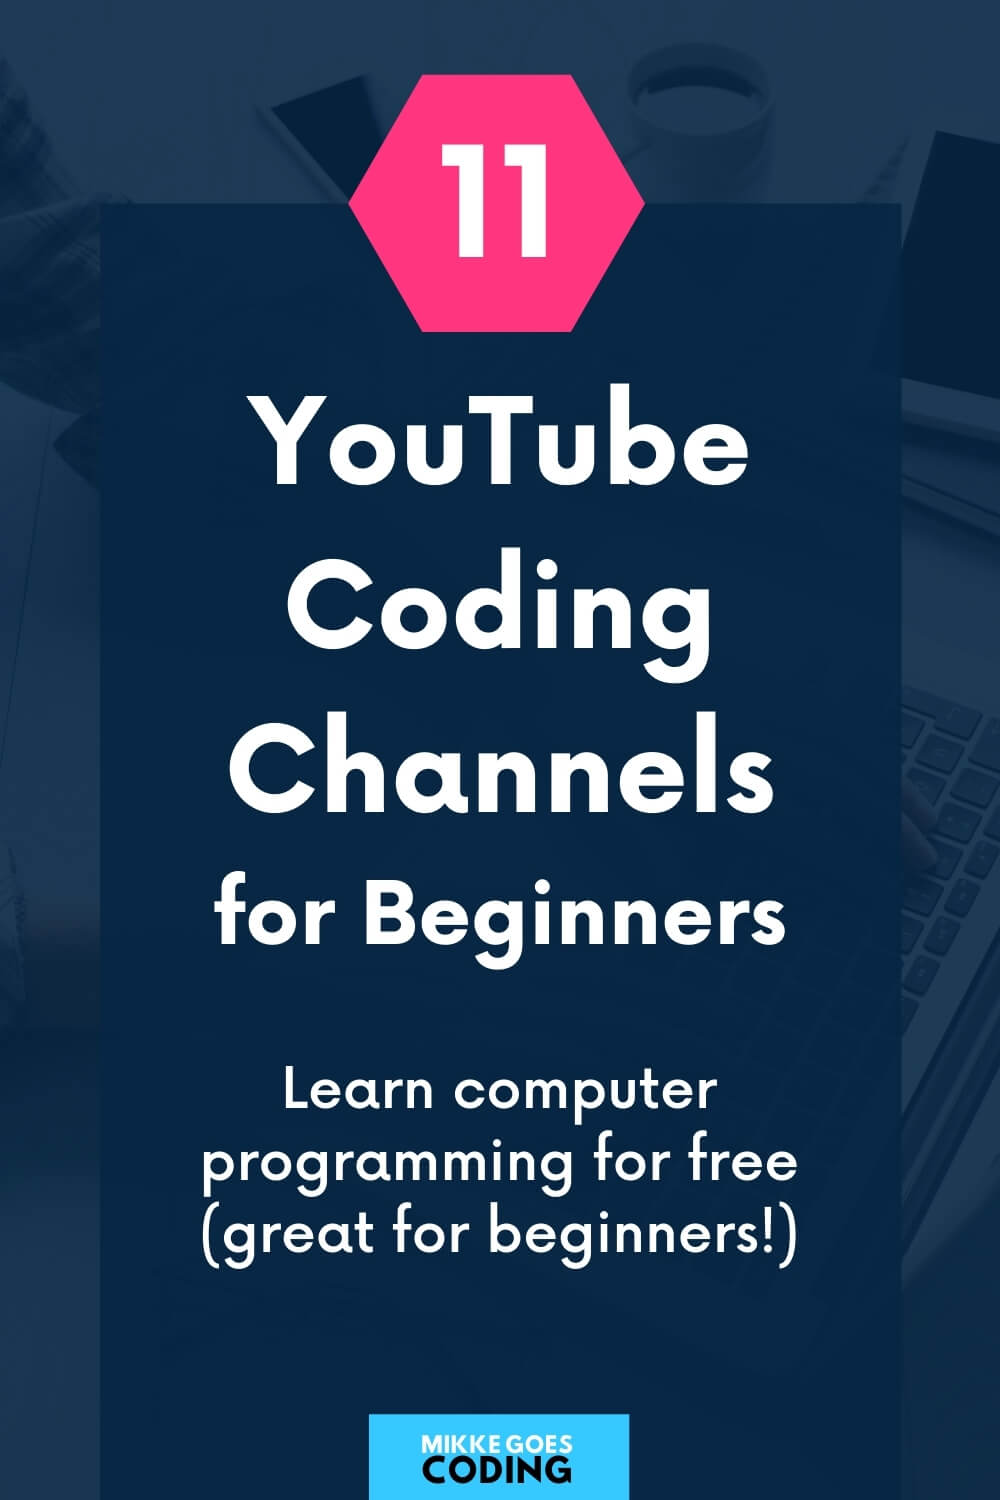 YouTube coding channels - Learn programming for beginners